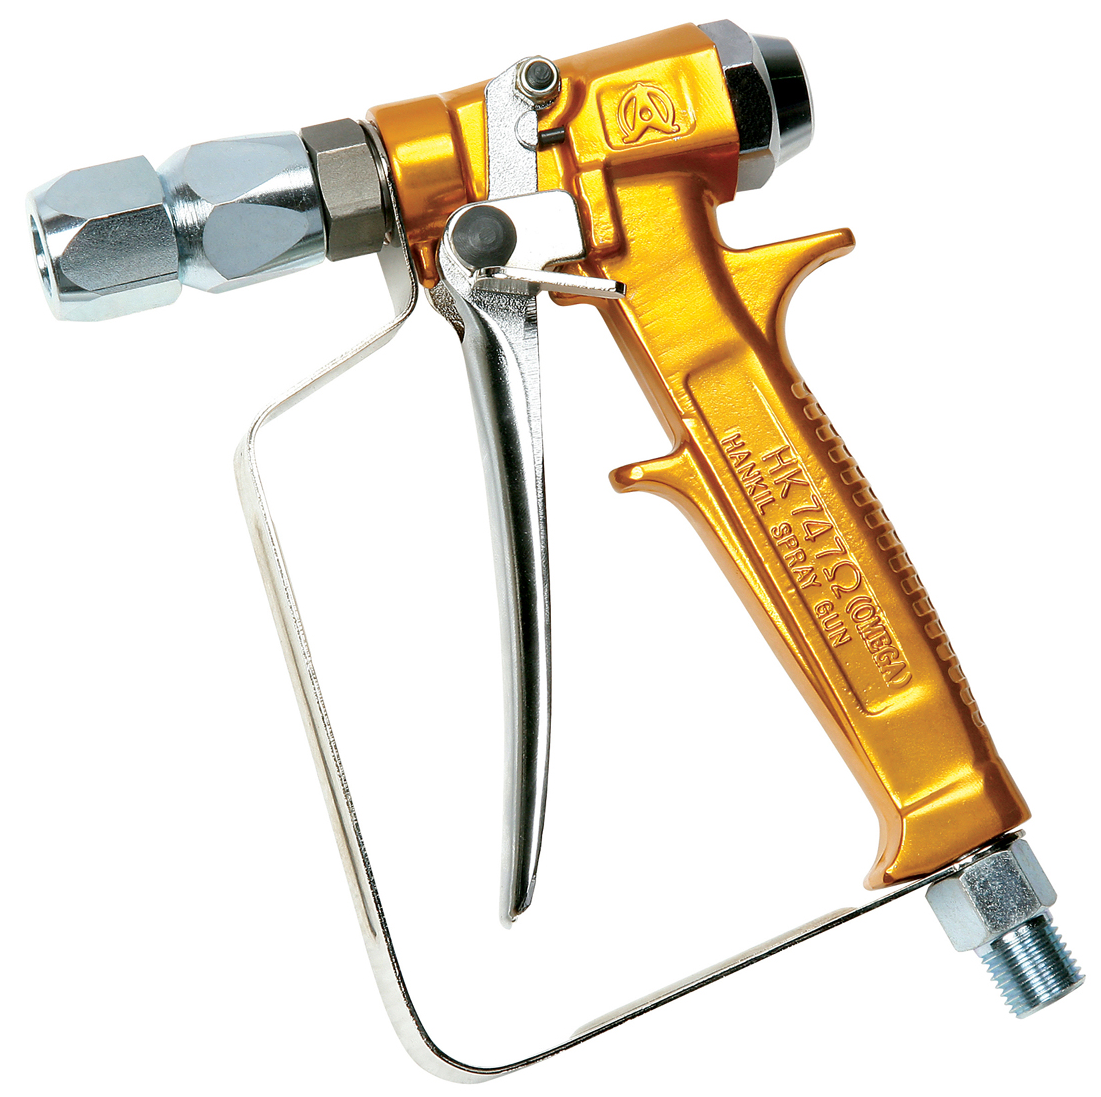 Airless Spray Gun HK-747 OMEGA